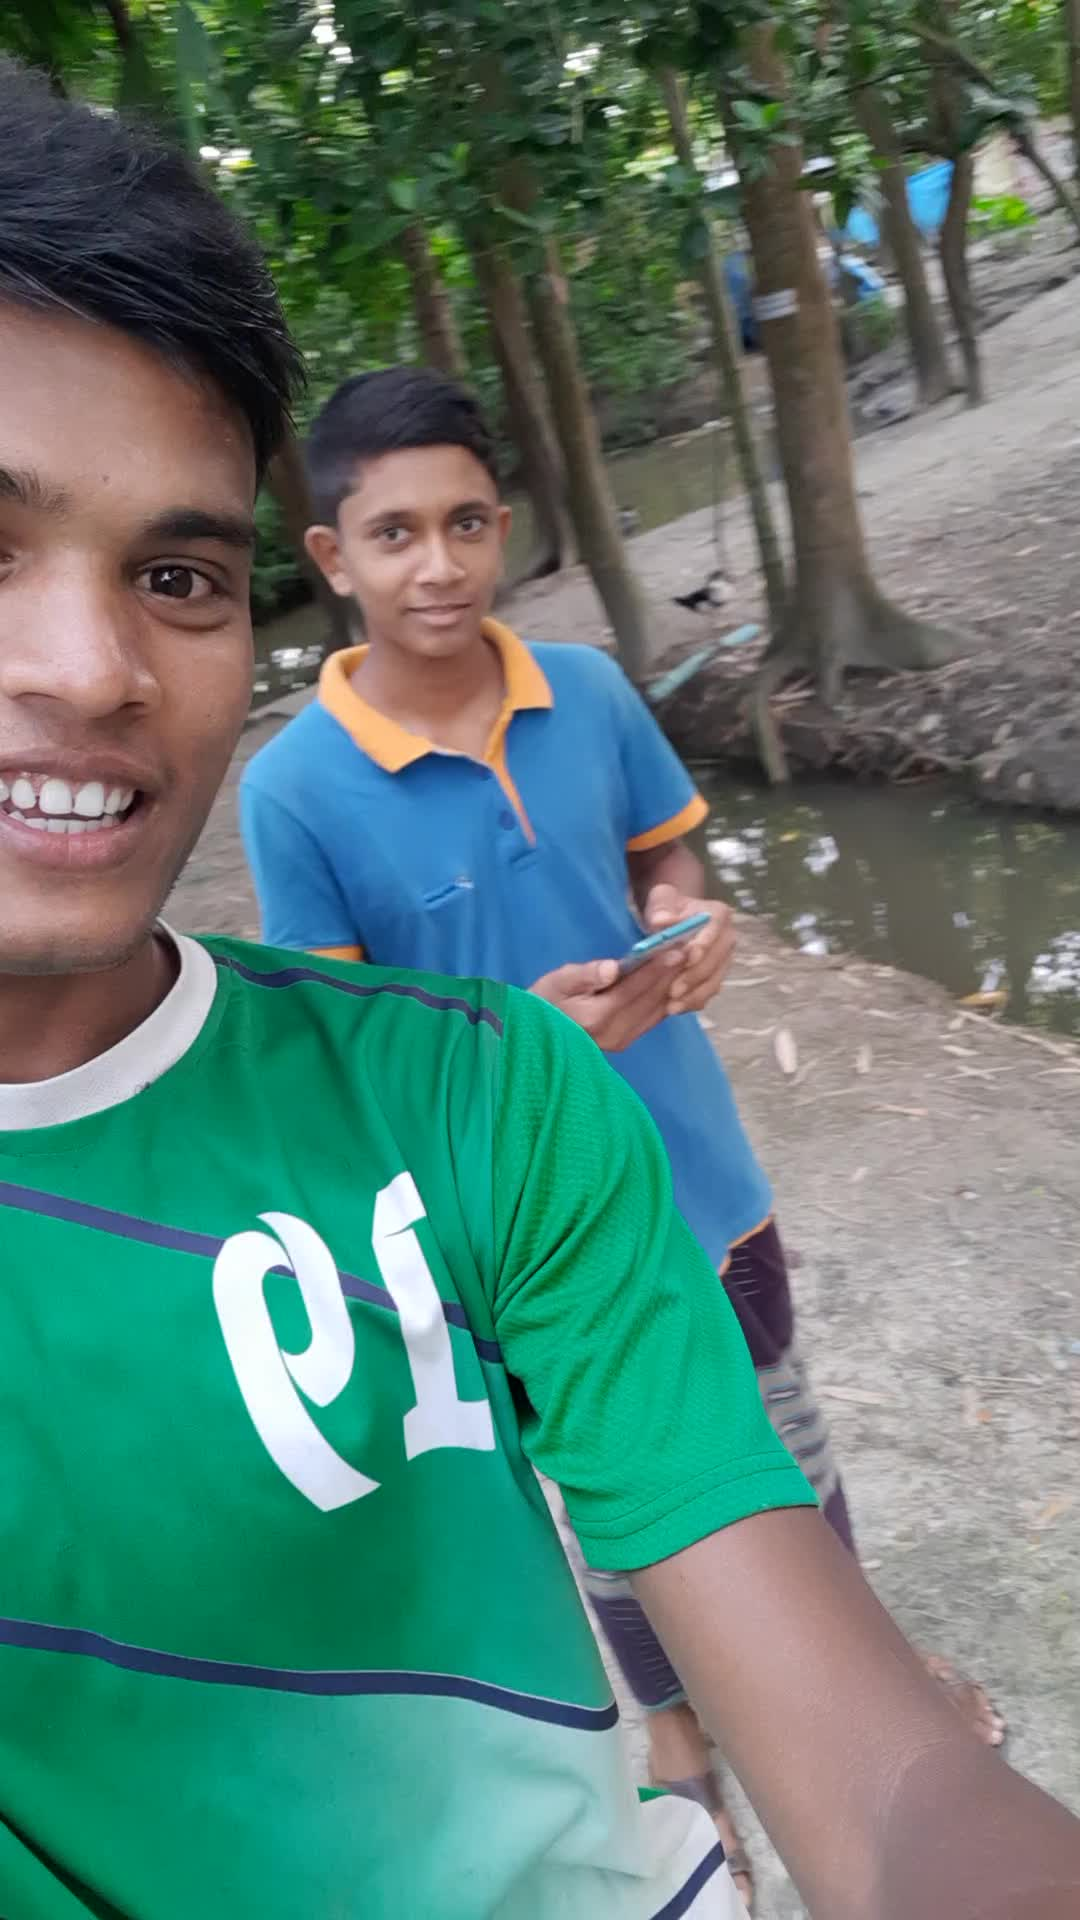 Afridi Hossain and I made the video together